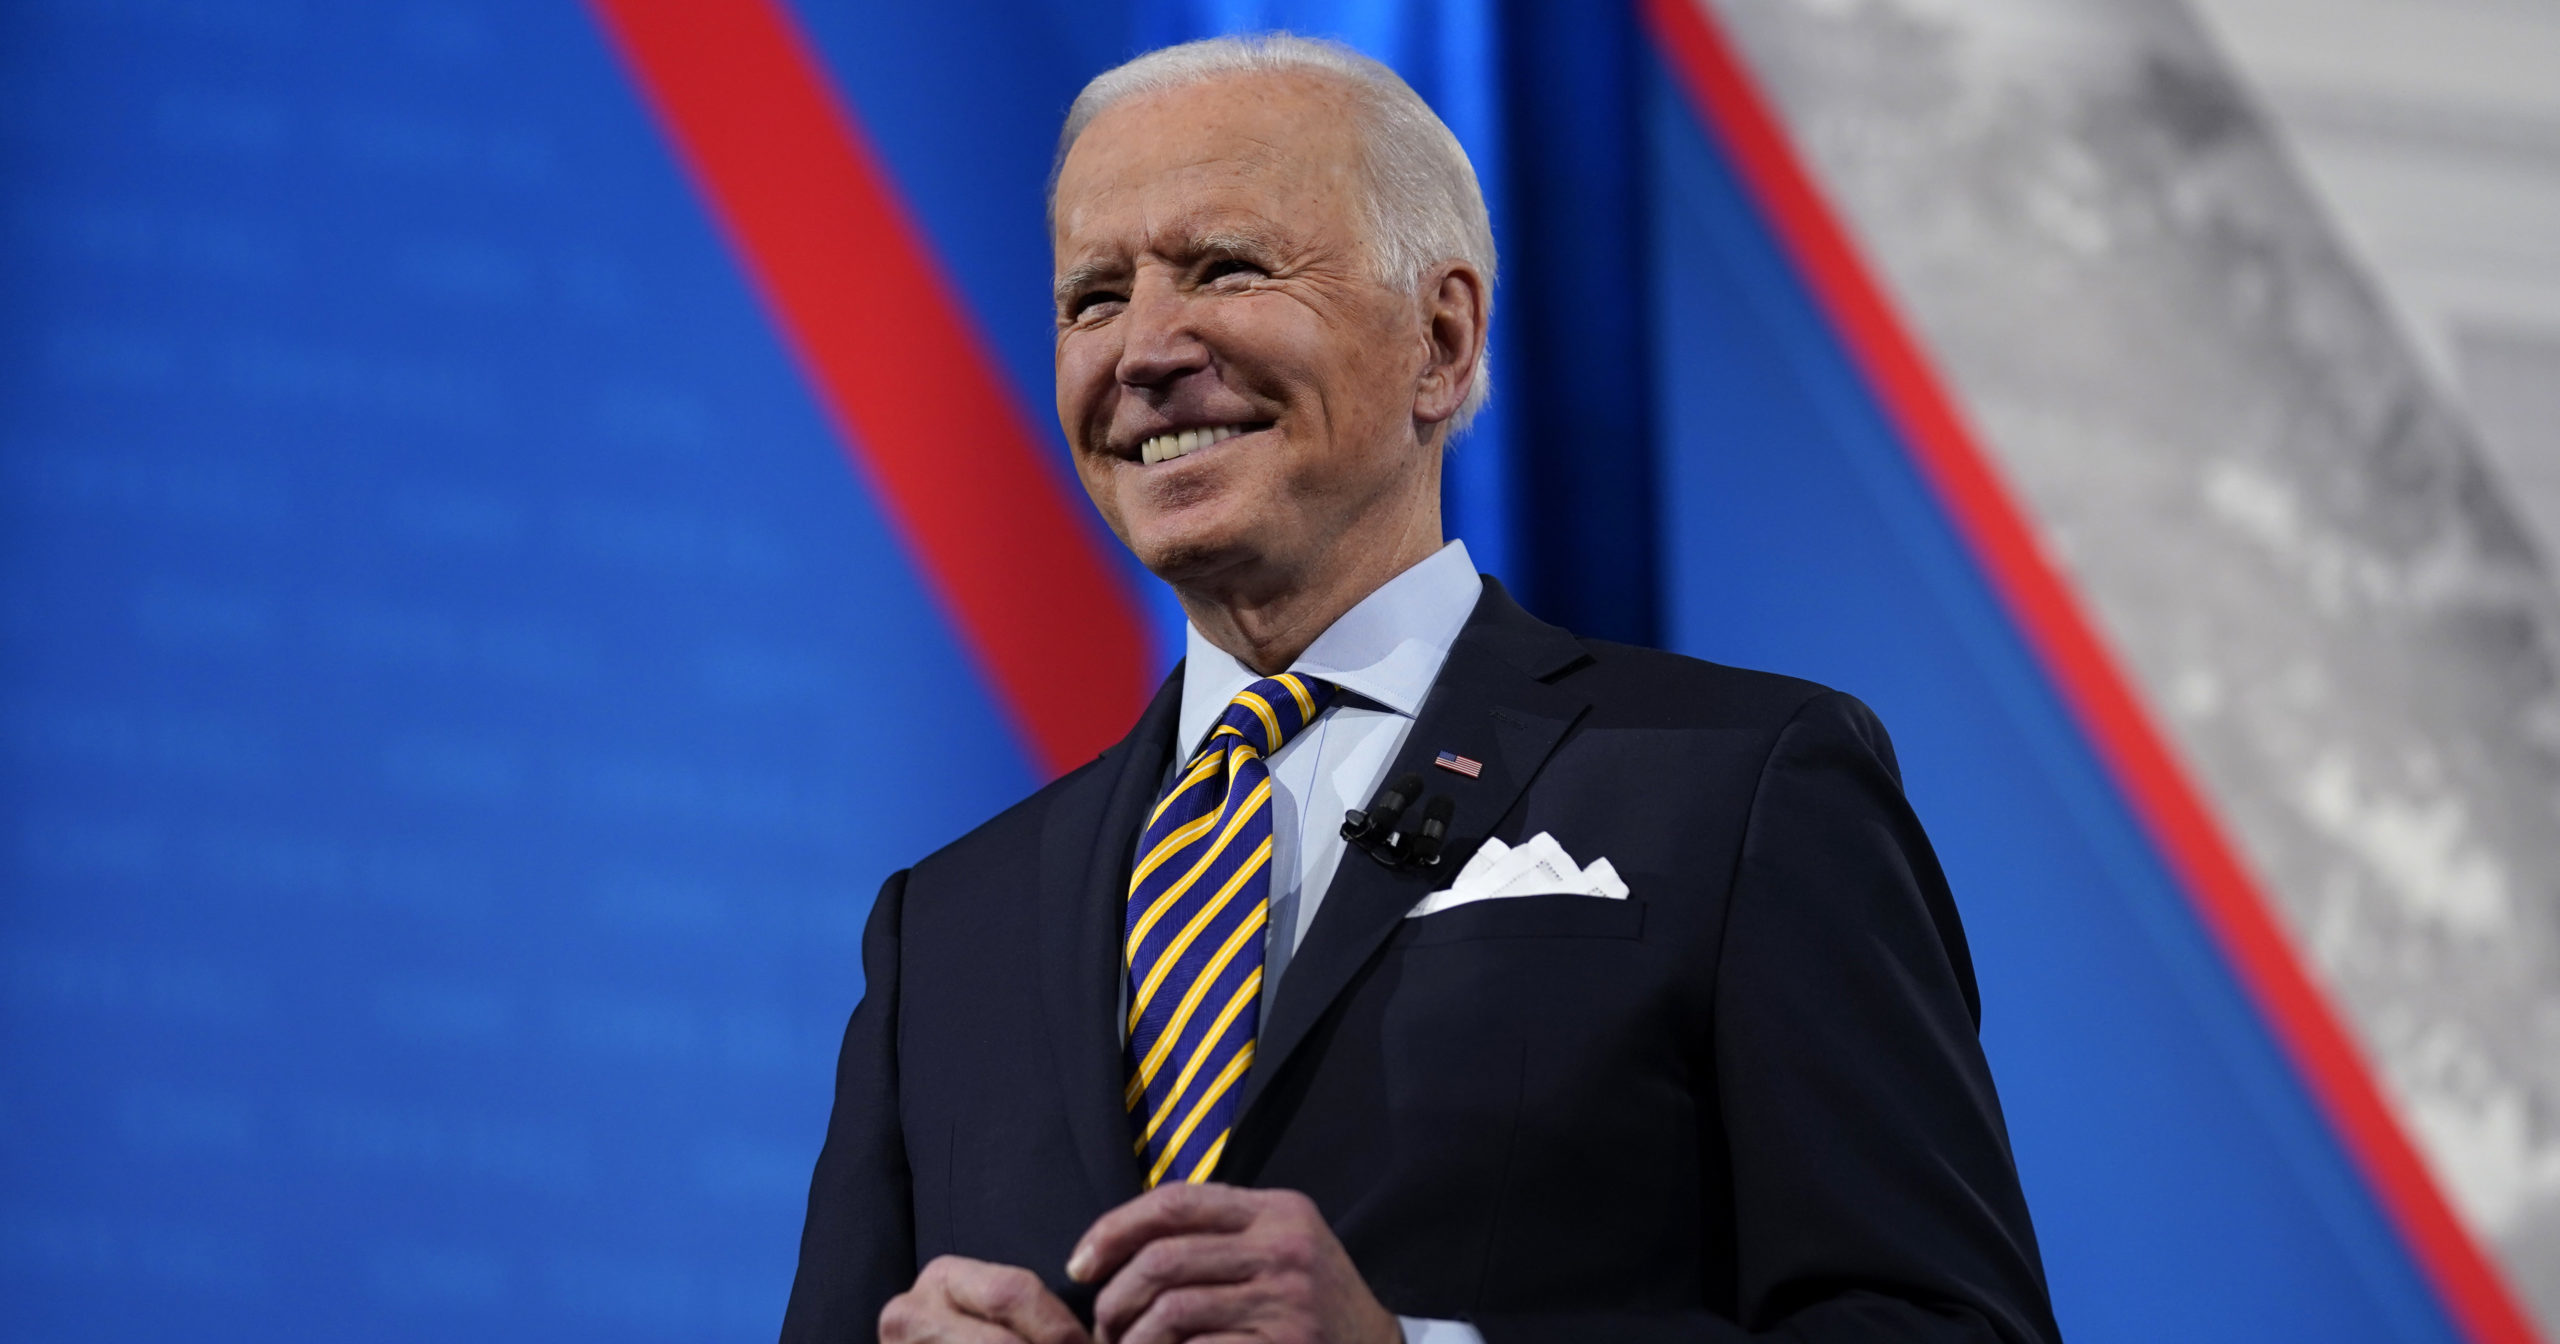 President Joe Biden stands on stage during a televised town hall event at Pabst Theater on Feb. 16, 2021, in Milwaukee.